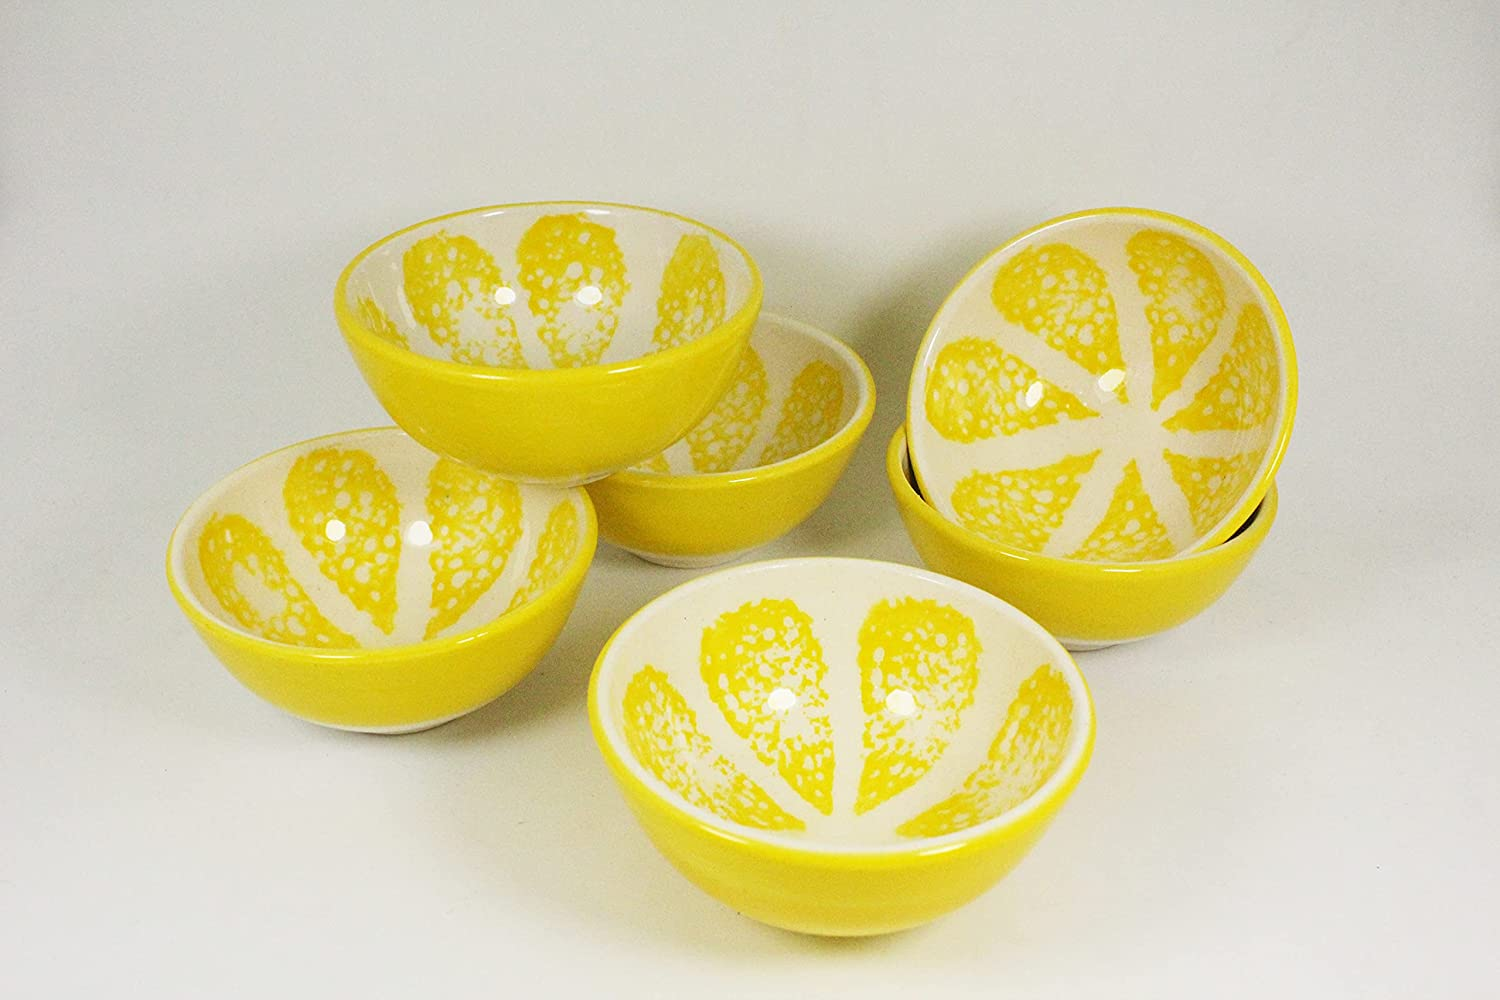 Cute Fruit Lemon Designed Bowls - Ceramic Snack Bowls For Ice Cream Rice Nuts Ketchup Condiment Soy Sauce Sıde Dıshes Prep Serving Bowls For Home Kitchen 6 Pcs - 8 cm - Yellow Color